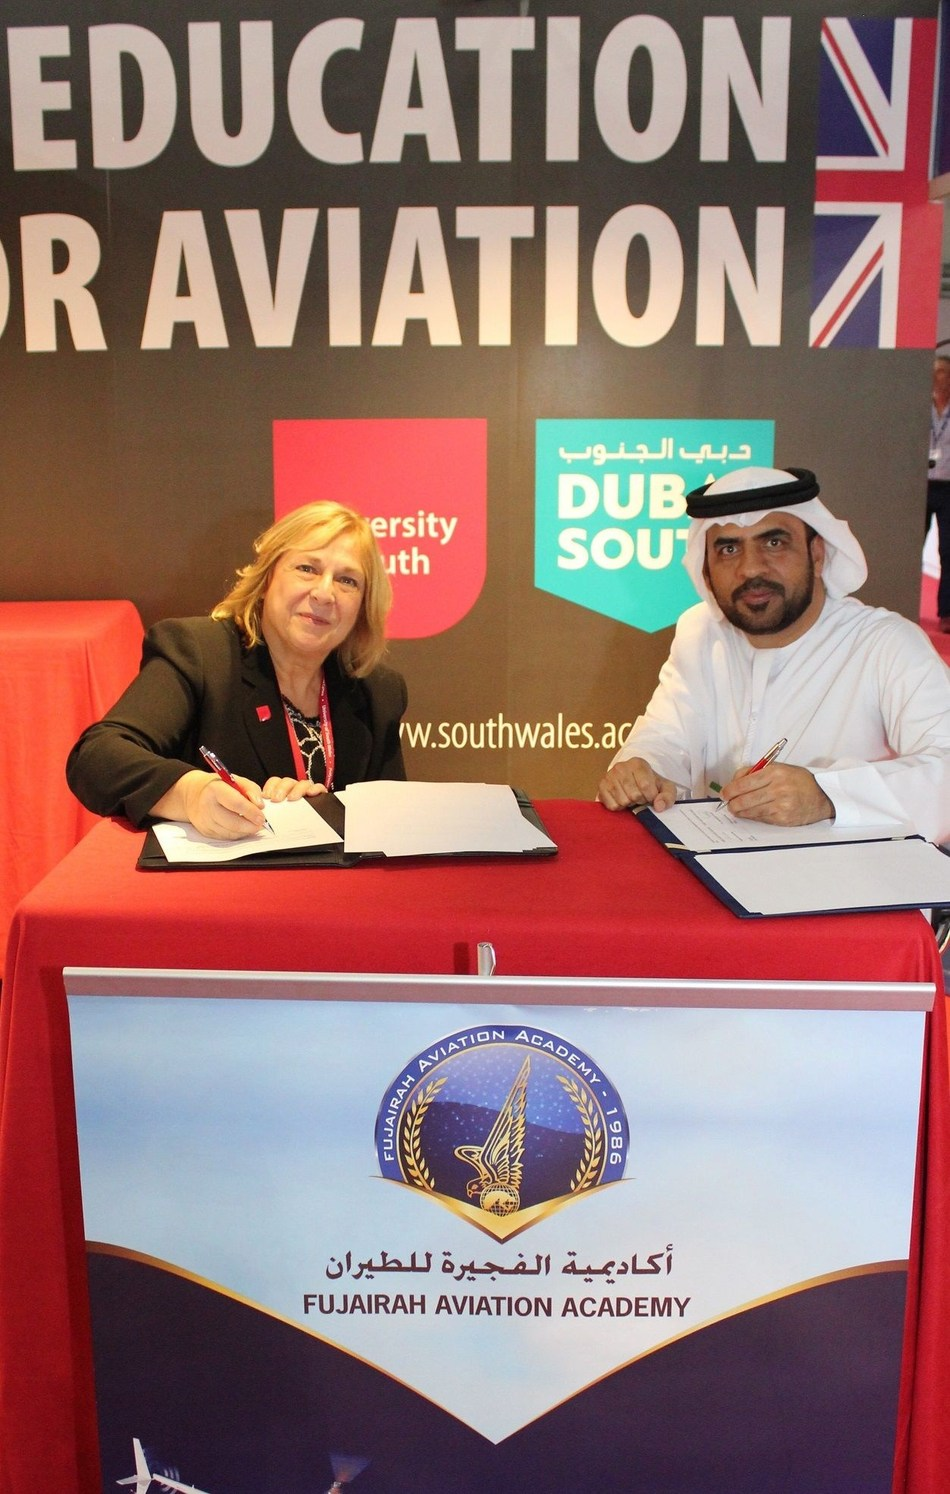 Professor Julie Lydon (University of South Wales) and Captain Yahya Alboloushi (PRNewsfoto/University of South Wales)